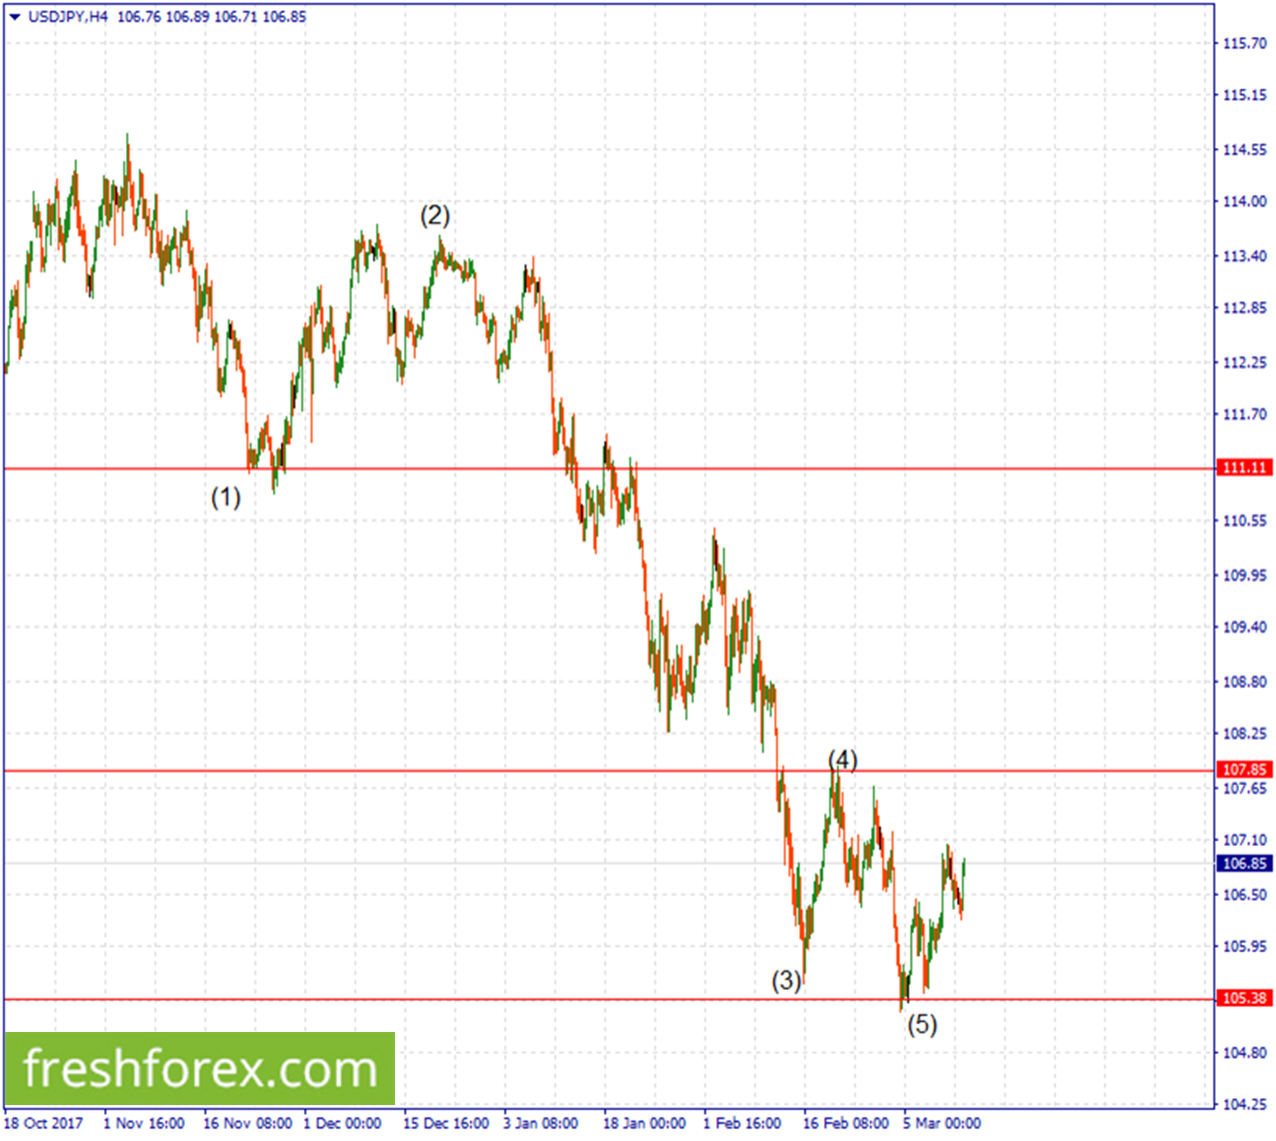 Sell the US Dollar upon a rebound from 107.85